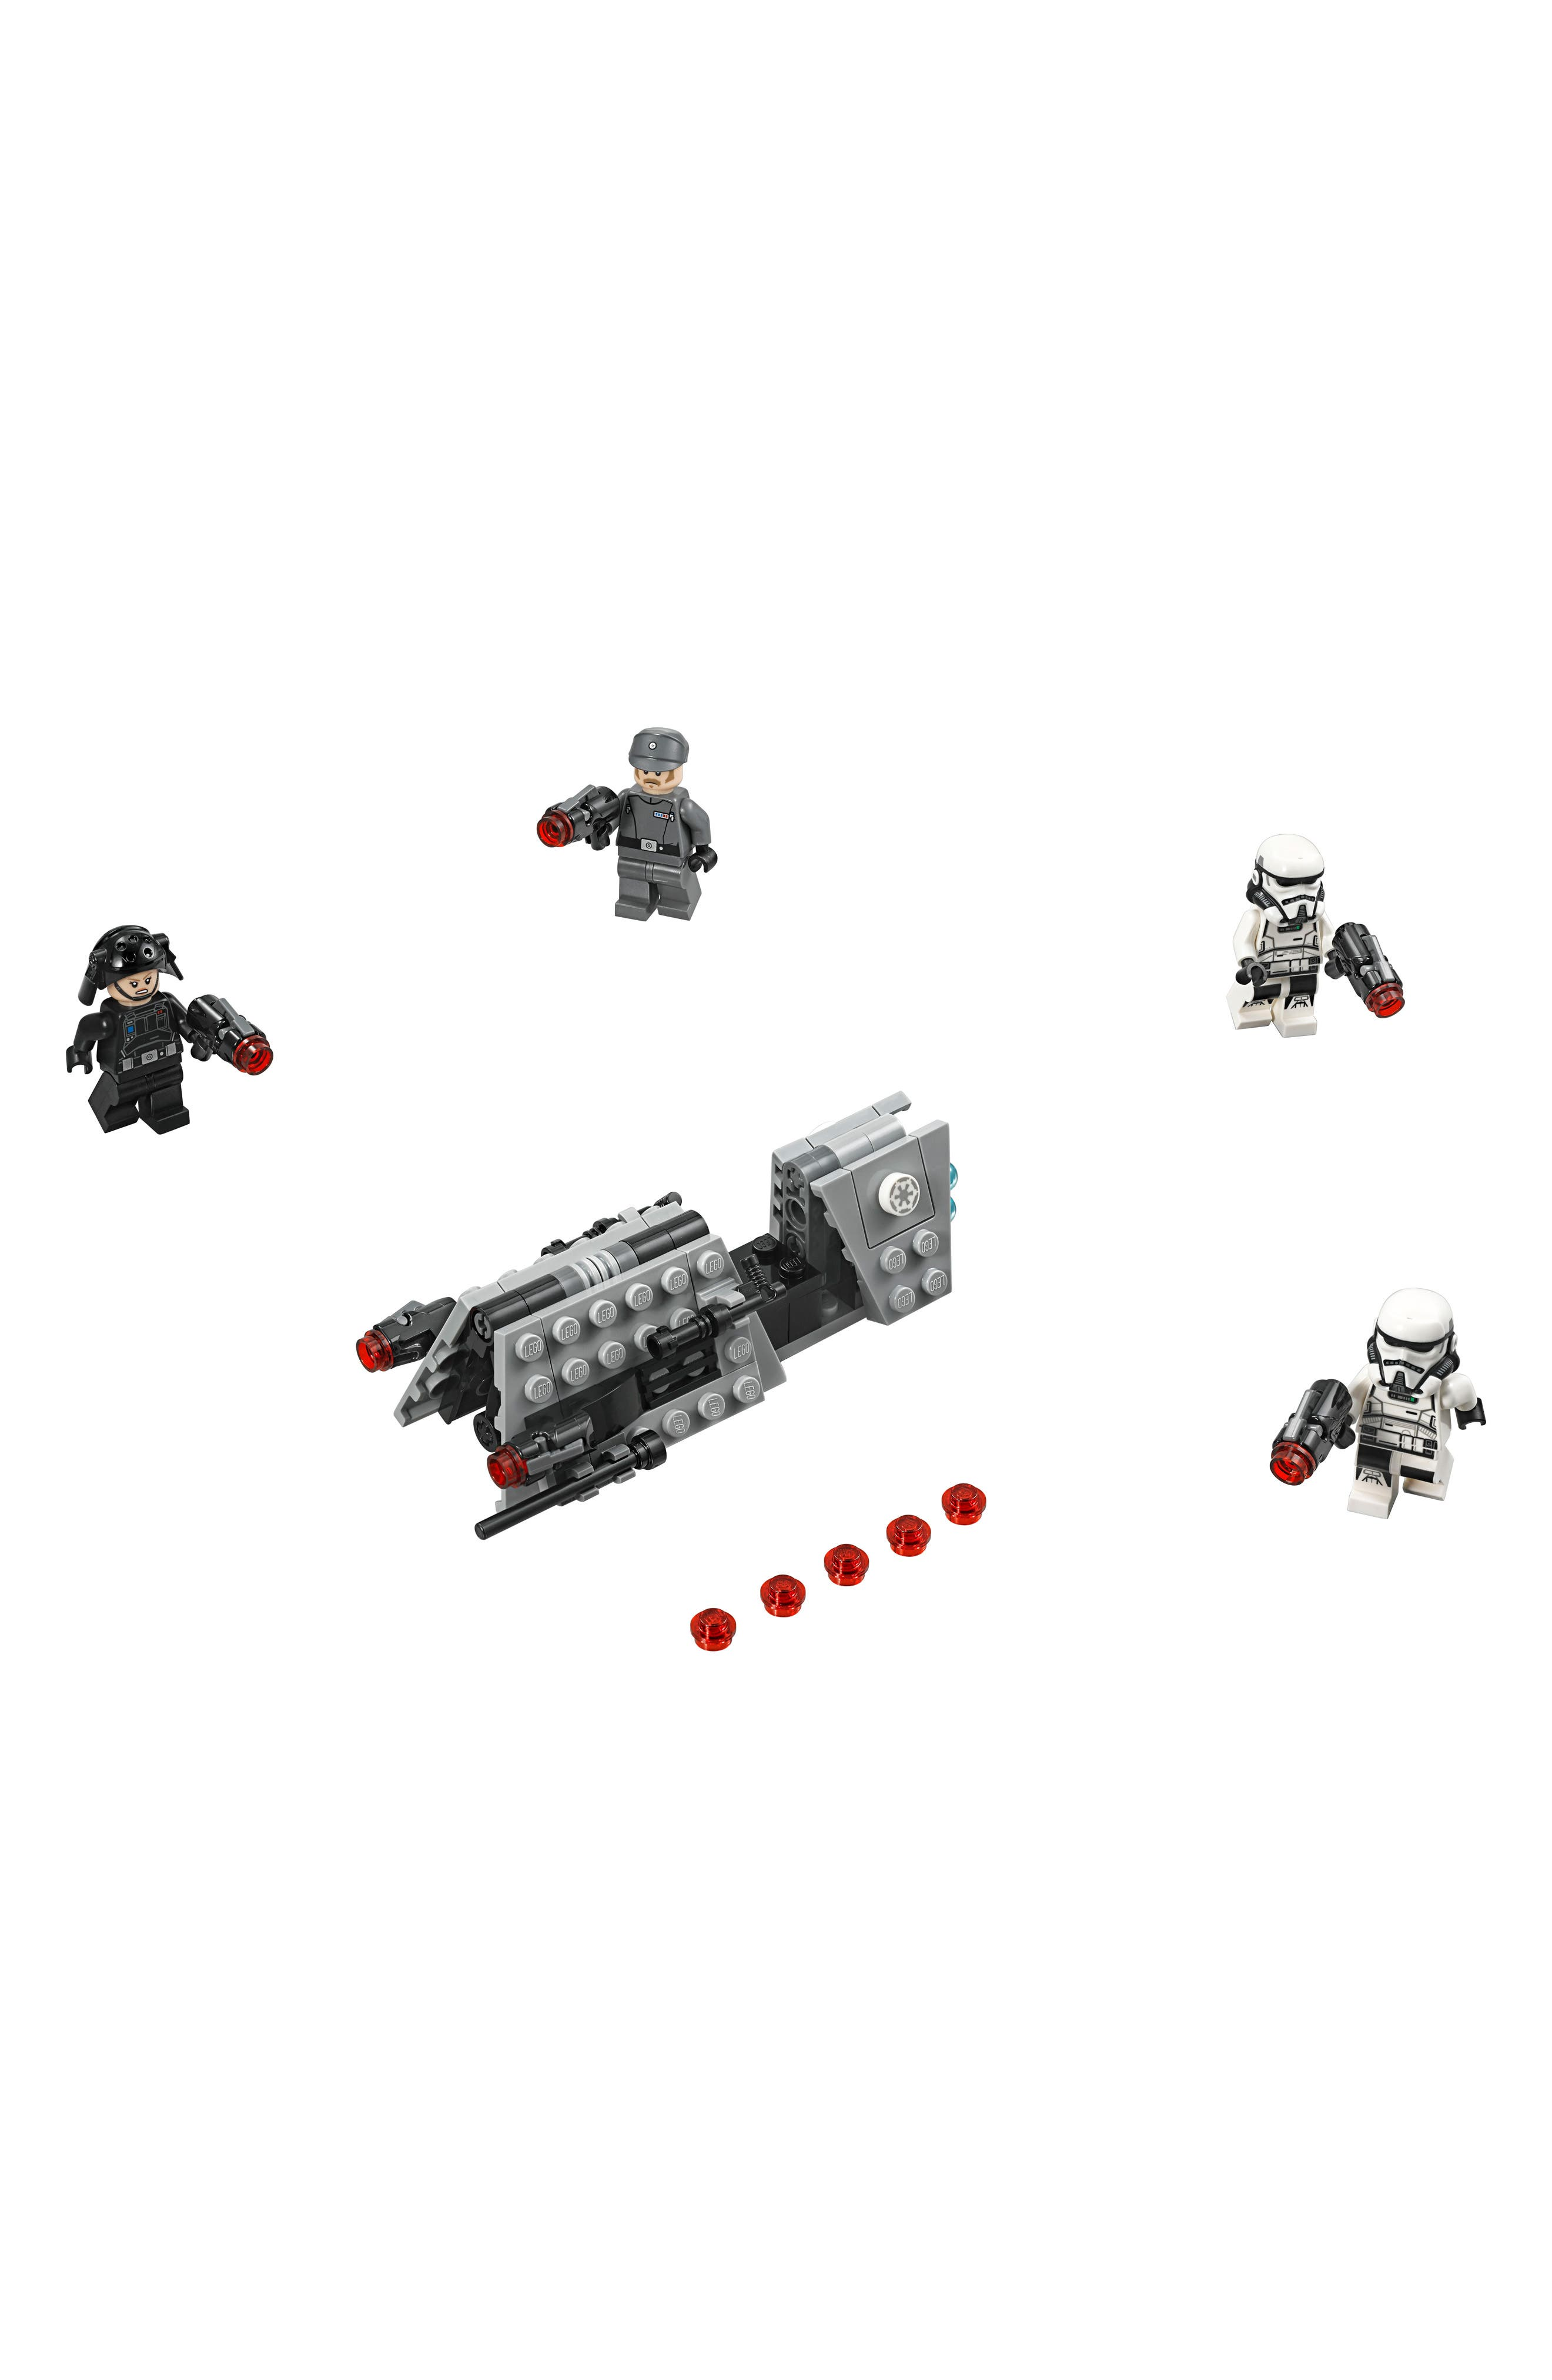 Star Wars<sup>®</sup> Imperial Patrol Battle Pack - 75207,                             Alternate thumbnail 2, color,                             020